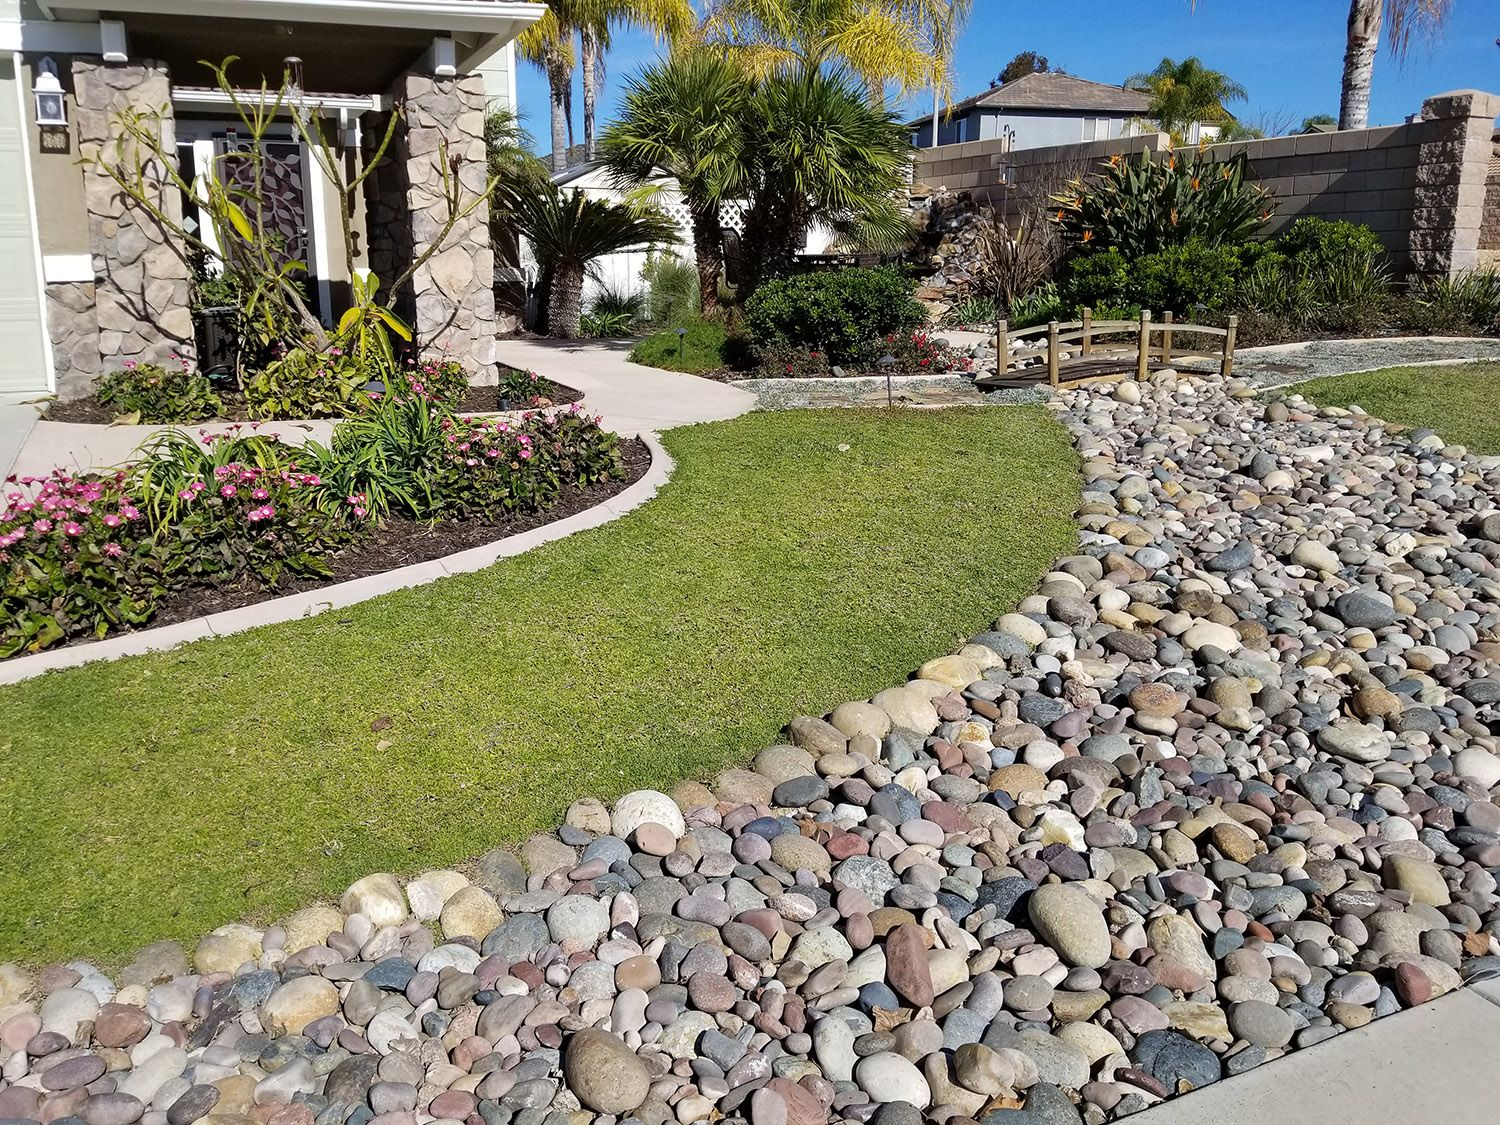 A grass-free front yard with a dry river bed, Kurapia ground